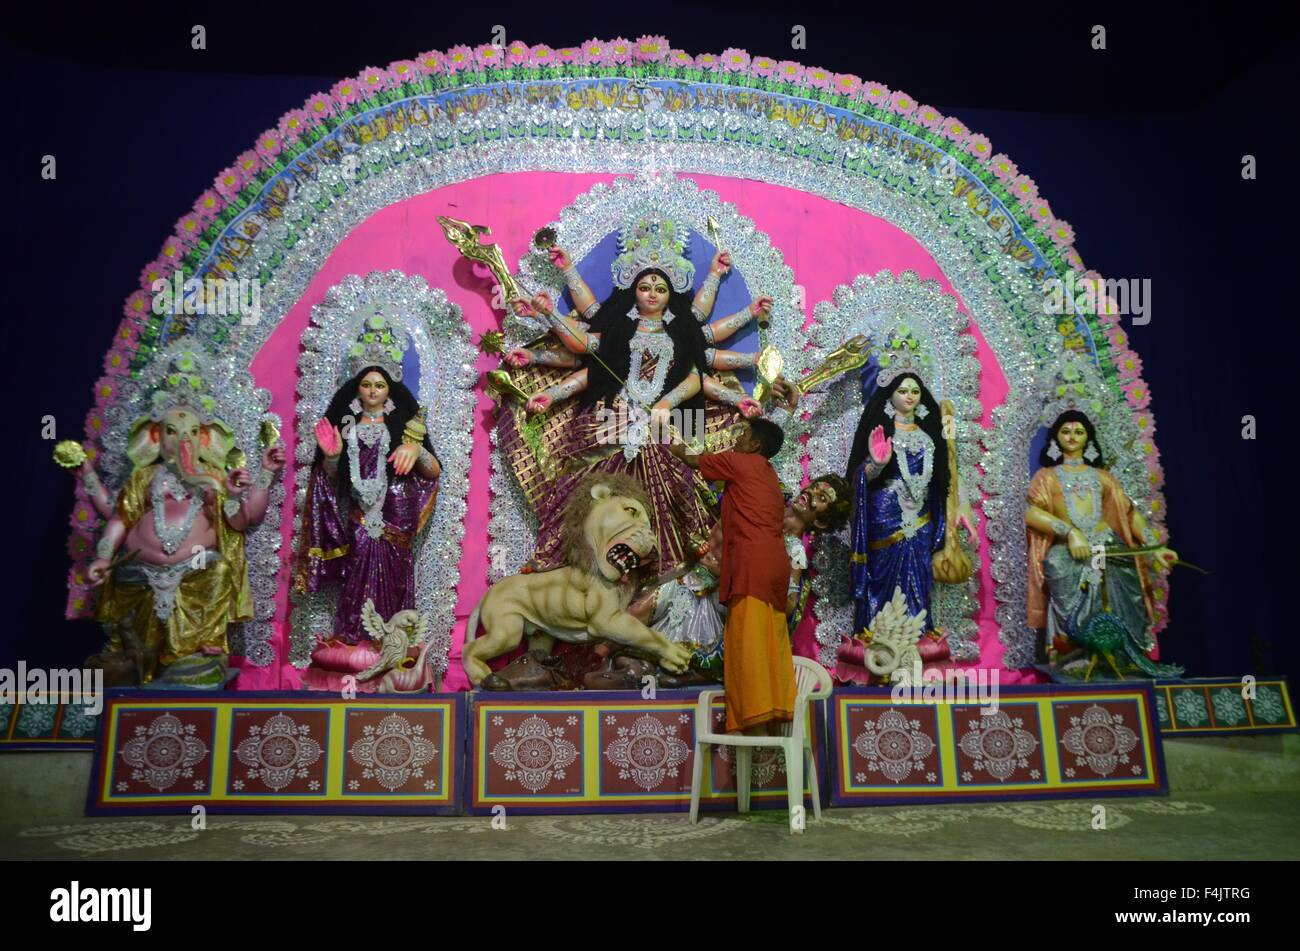 Oct. 19, 2015 - A bangali priest performing ''Shashtra Pujan'' Ritual during Navaratri Festival - Stock Image